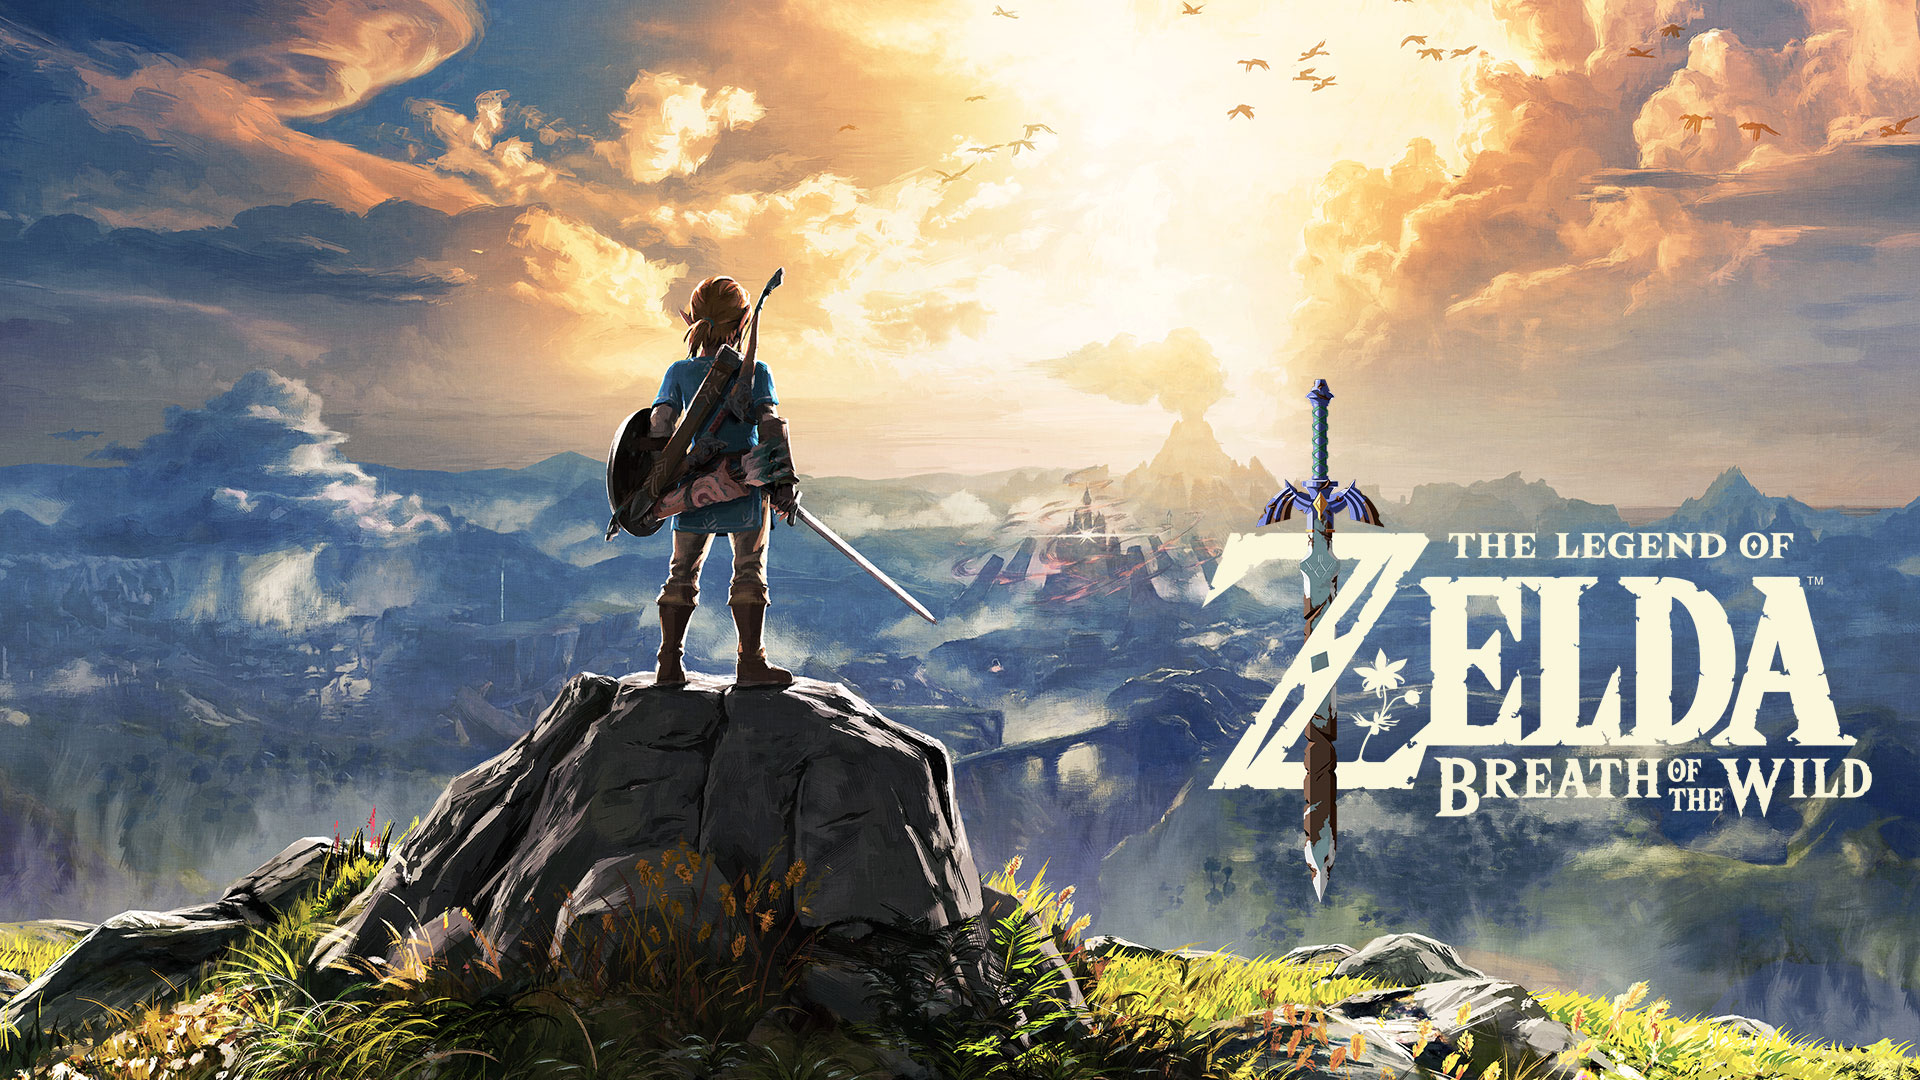 What if the masterpiece game The Legend of Zelda: Breath of the Wild is